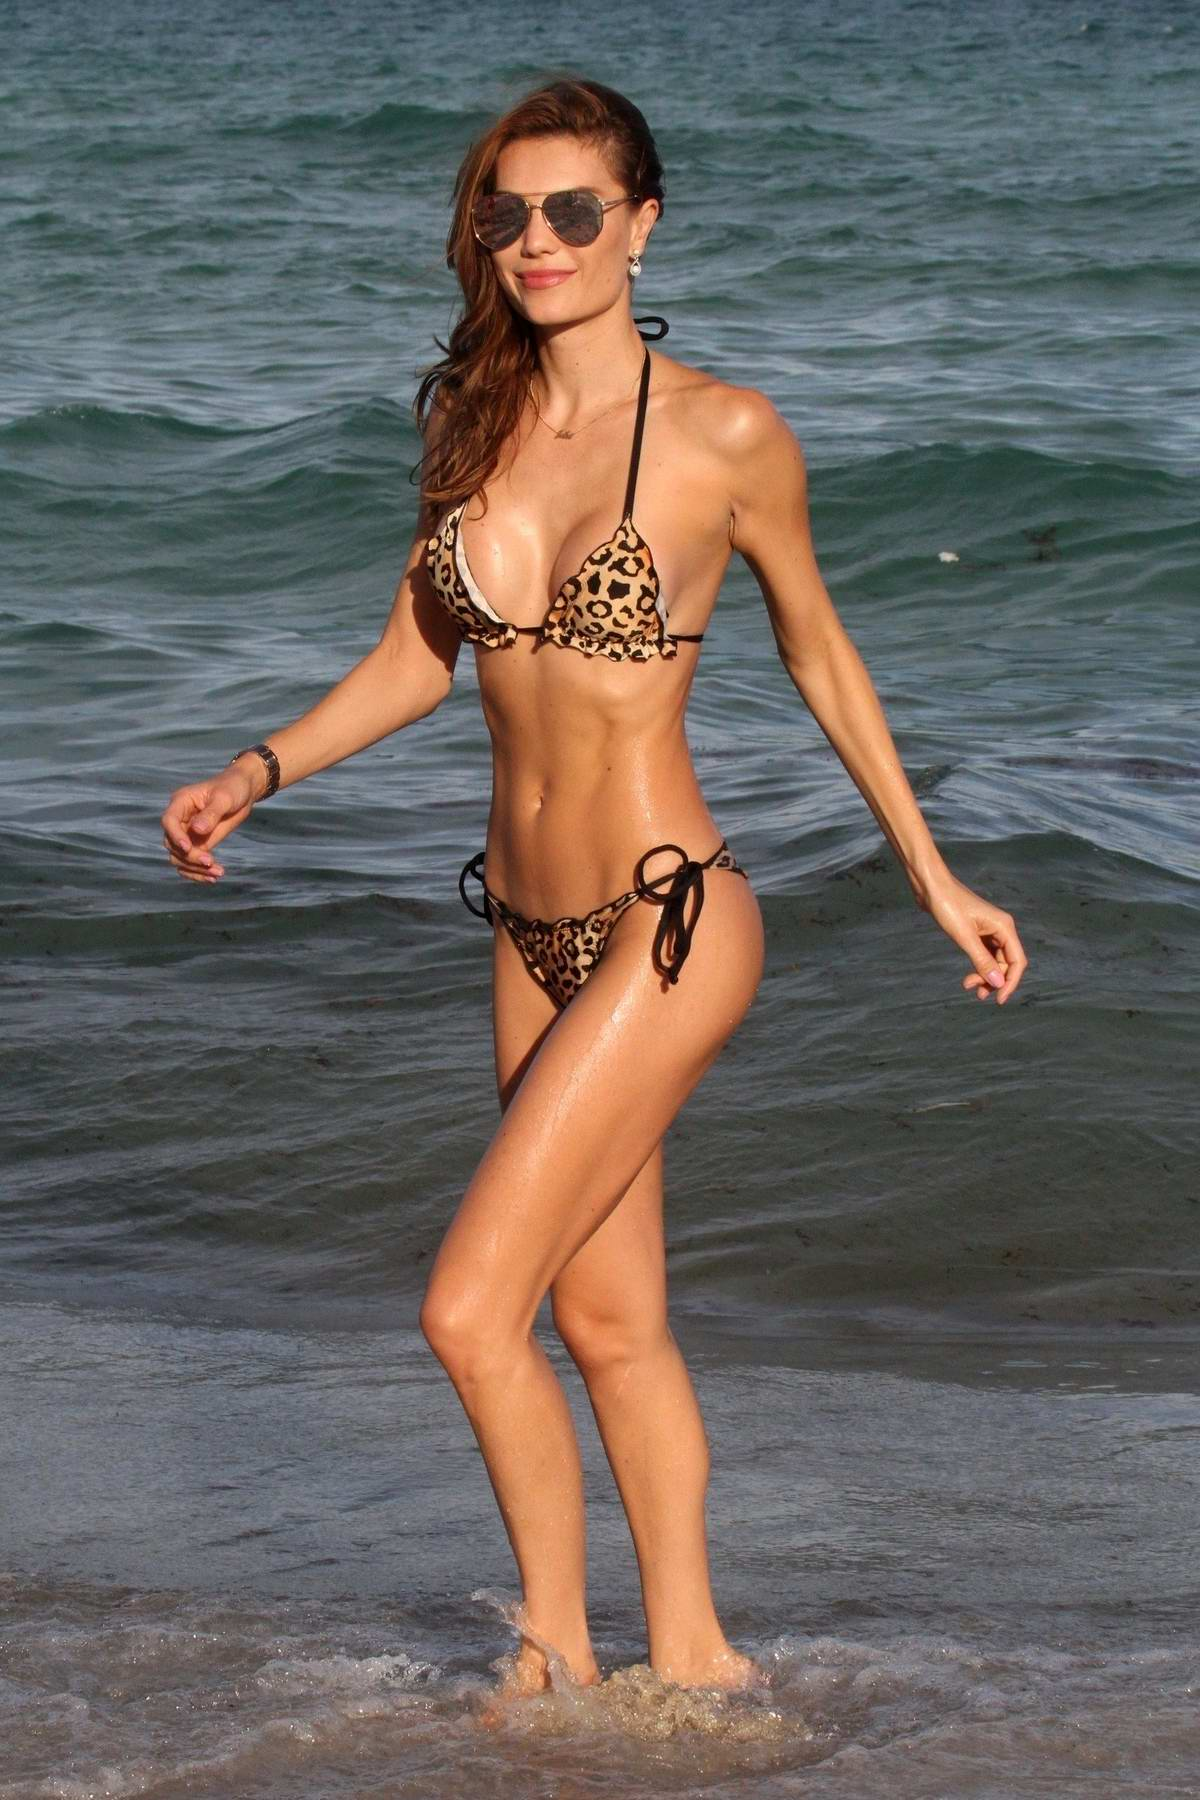 Julia Pereira spotted in multiple bikinis during a beach photoshoot in Miami, Florida